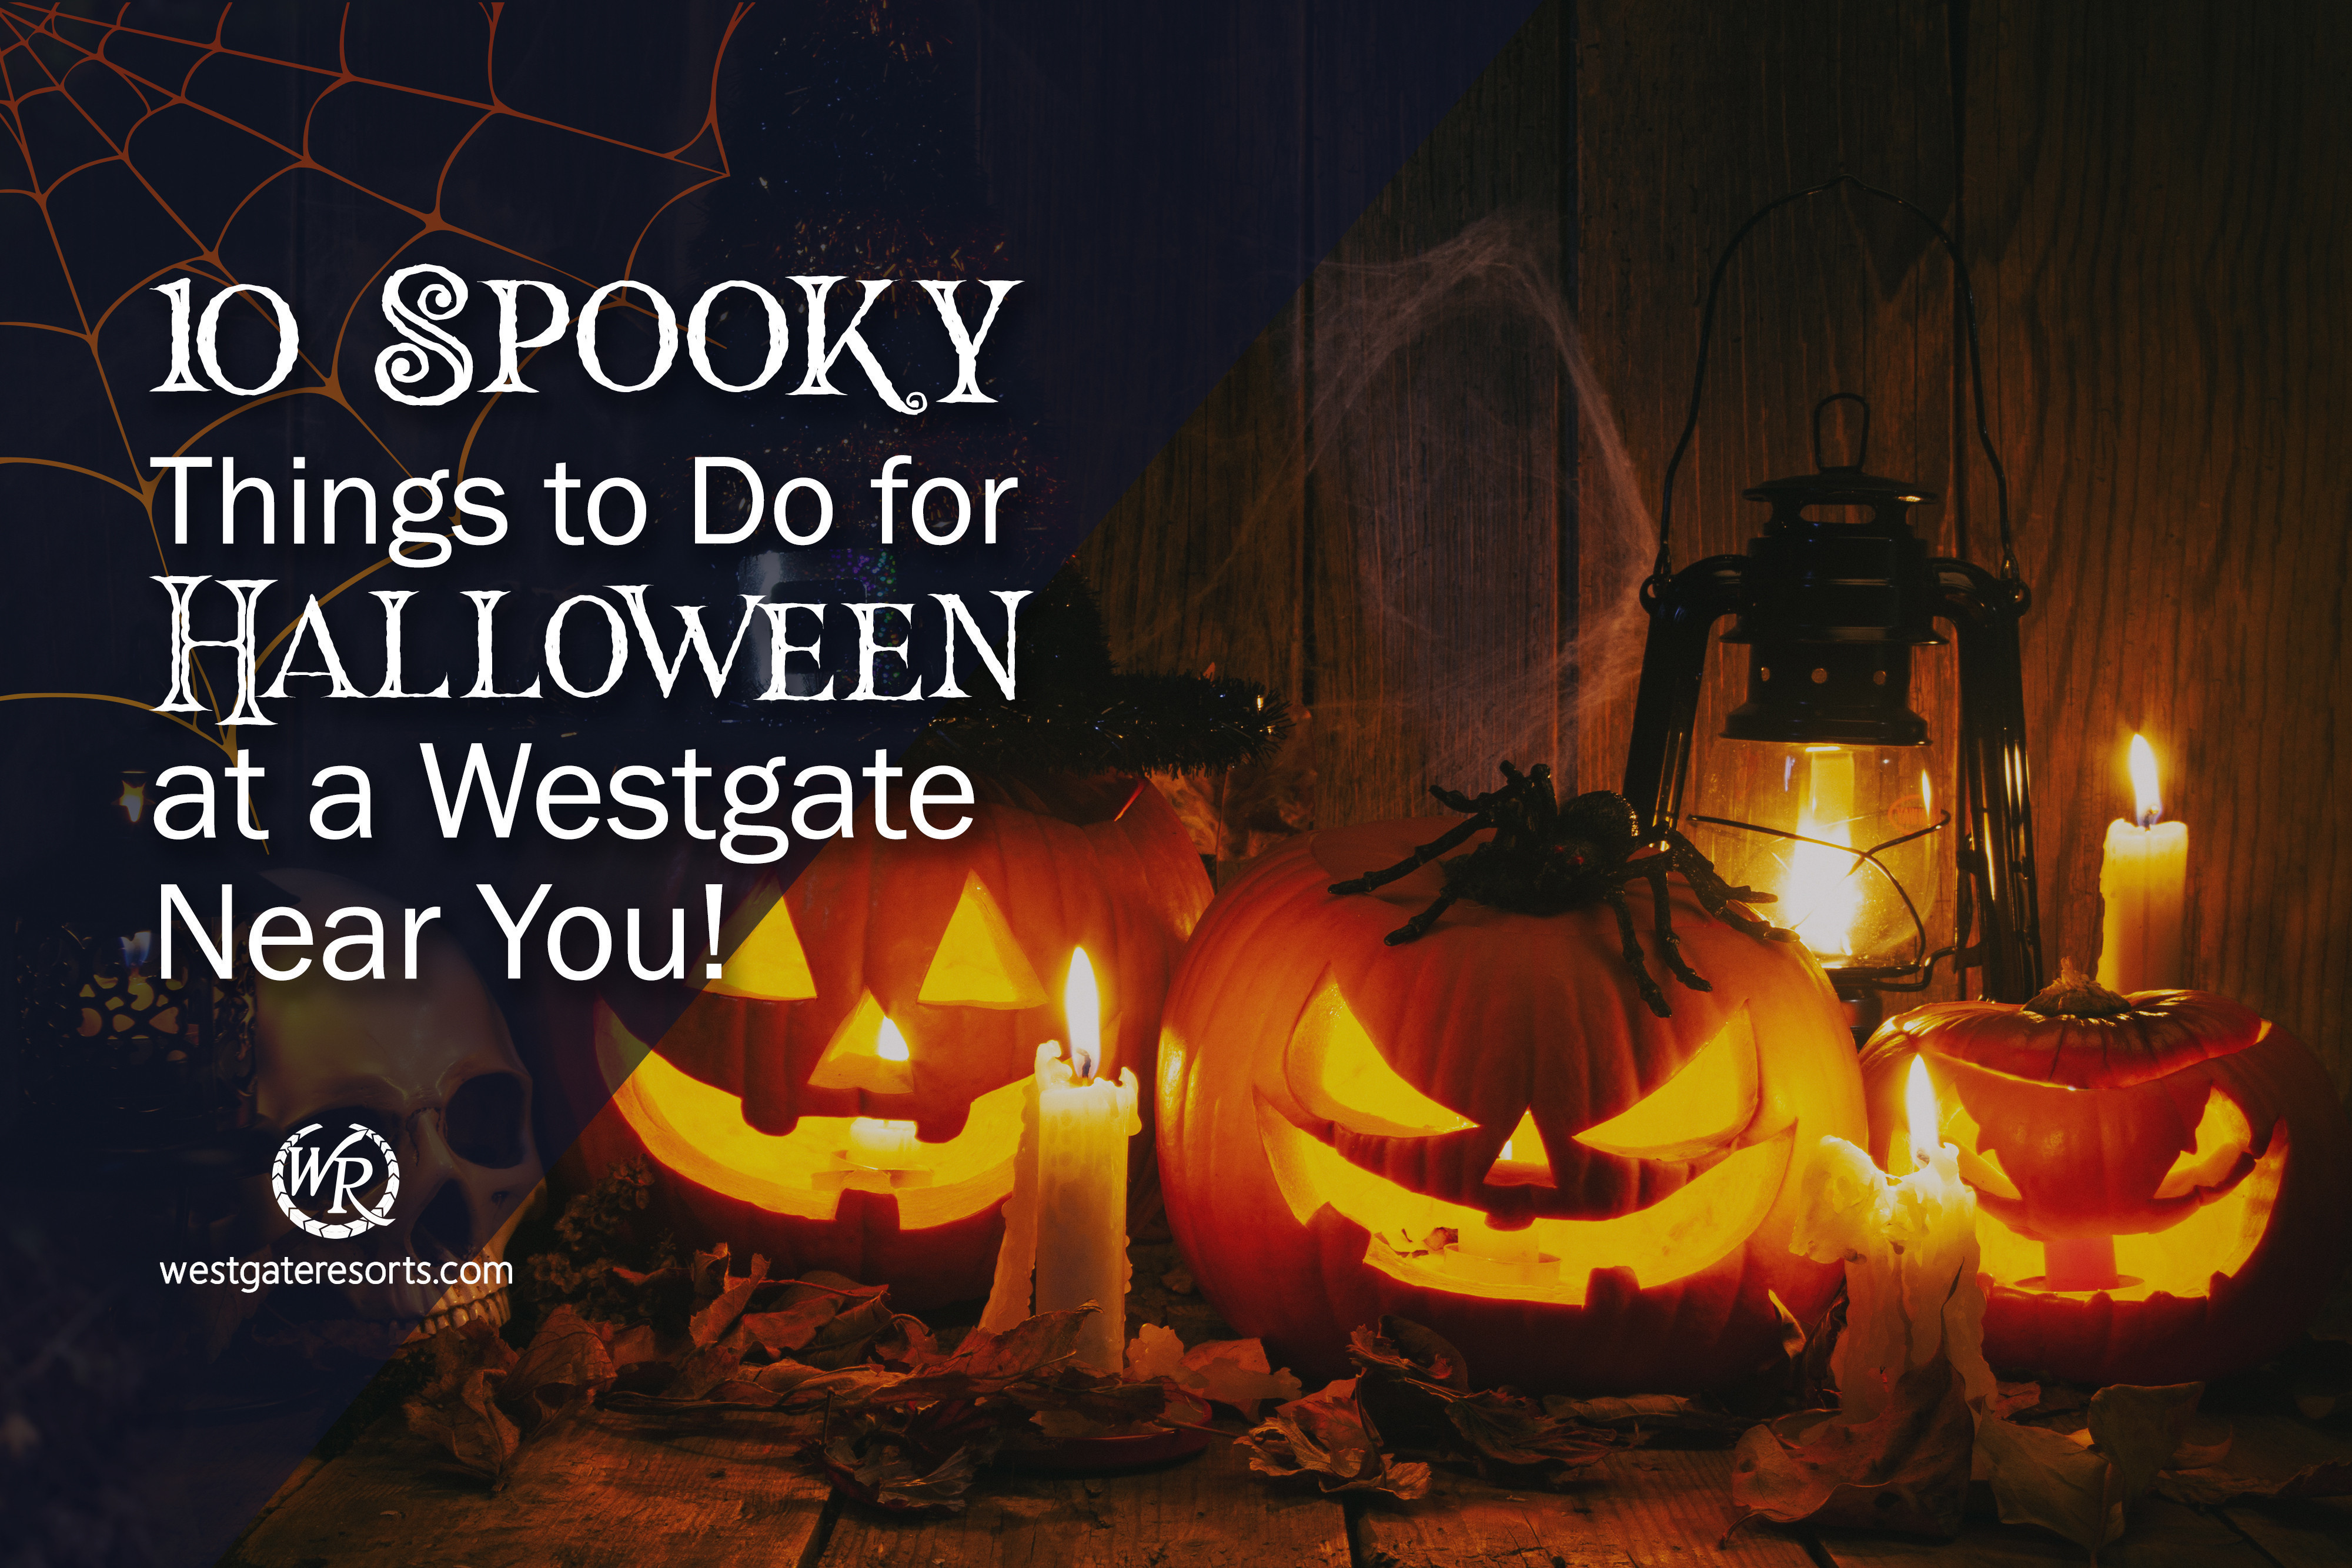 10 Spooky Things to Do for Halloween at a Westgate Near You!